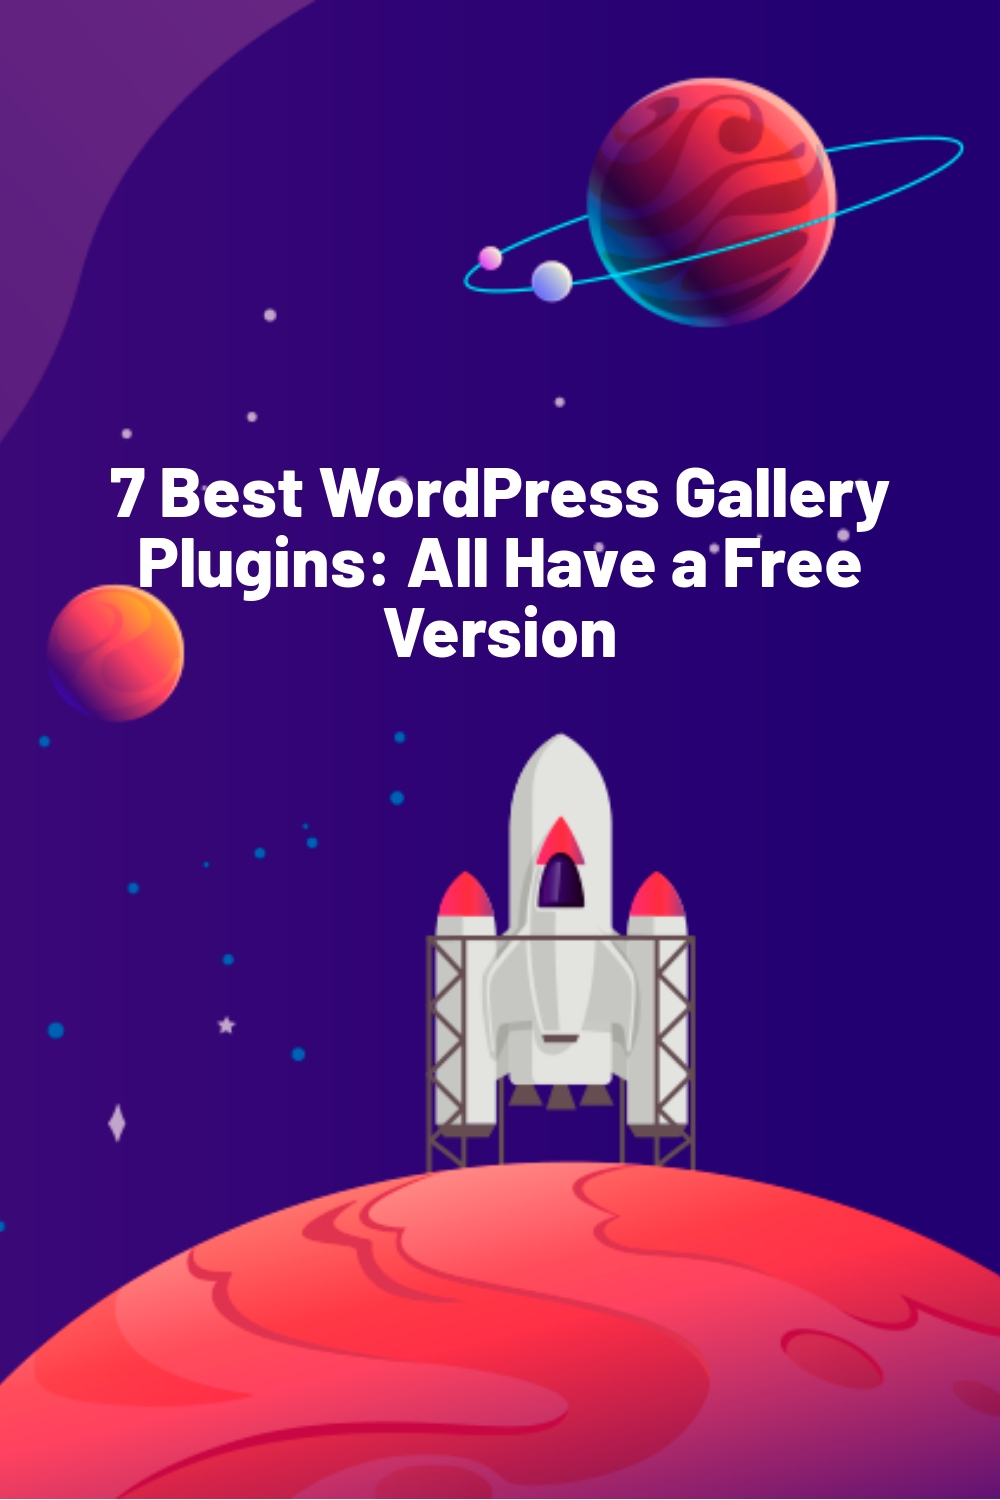 7 Best WordPress Gallery Plugins: All Have a Free Version